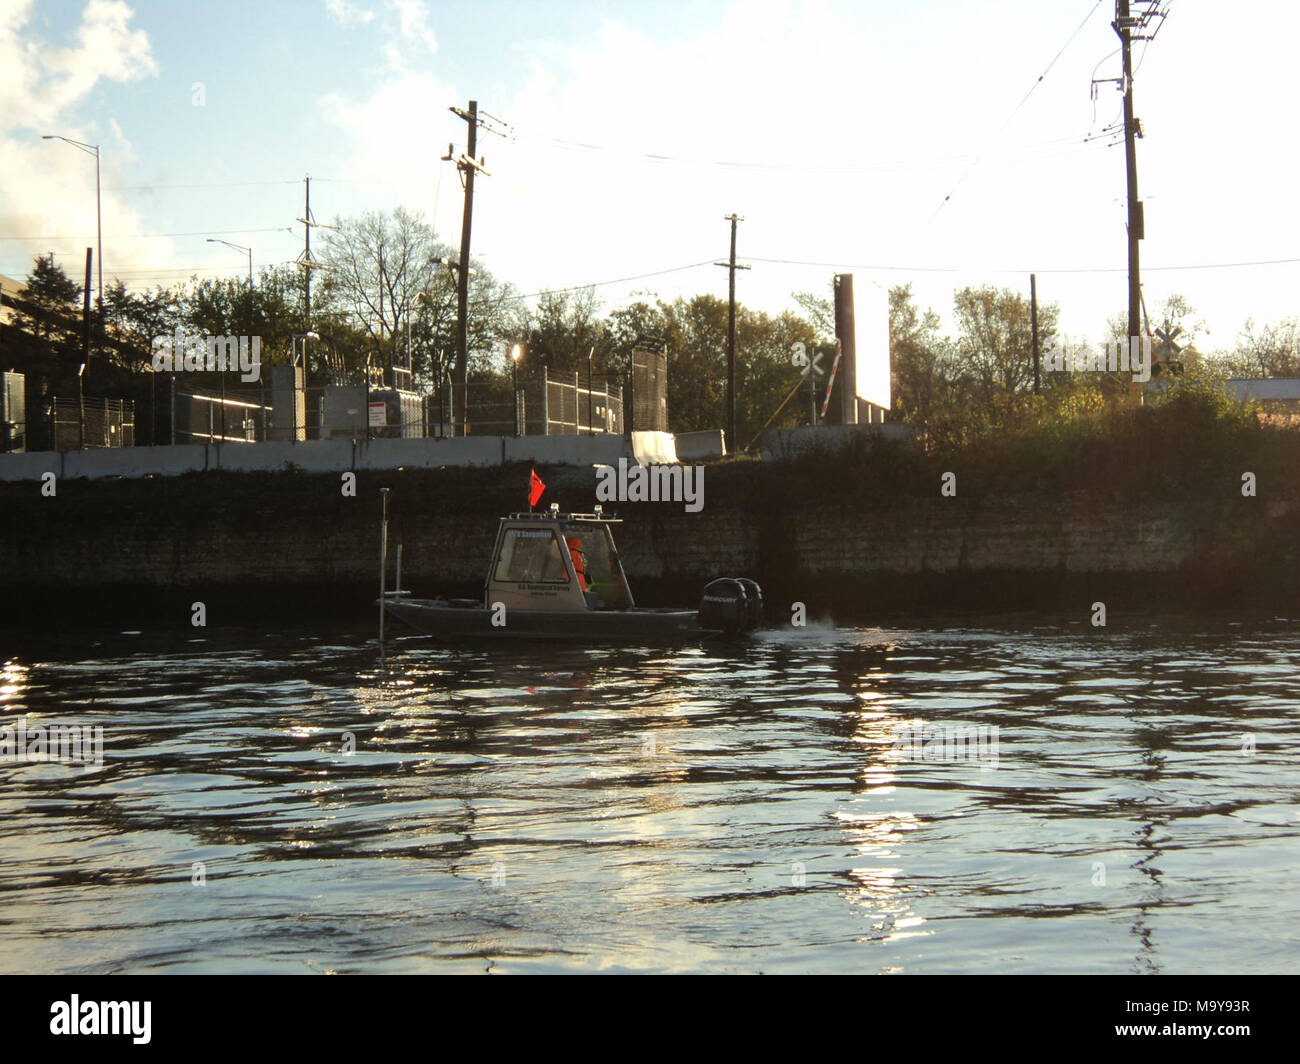 Electric Barrier Fish Clearing. USGS boat taking water velocity measurements. Photo - Stock Image